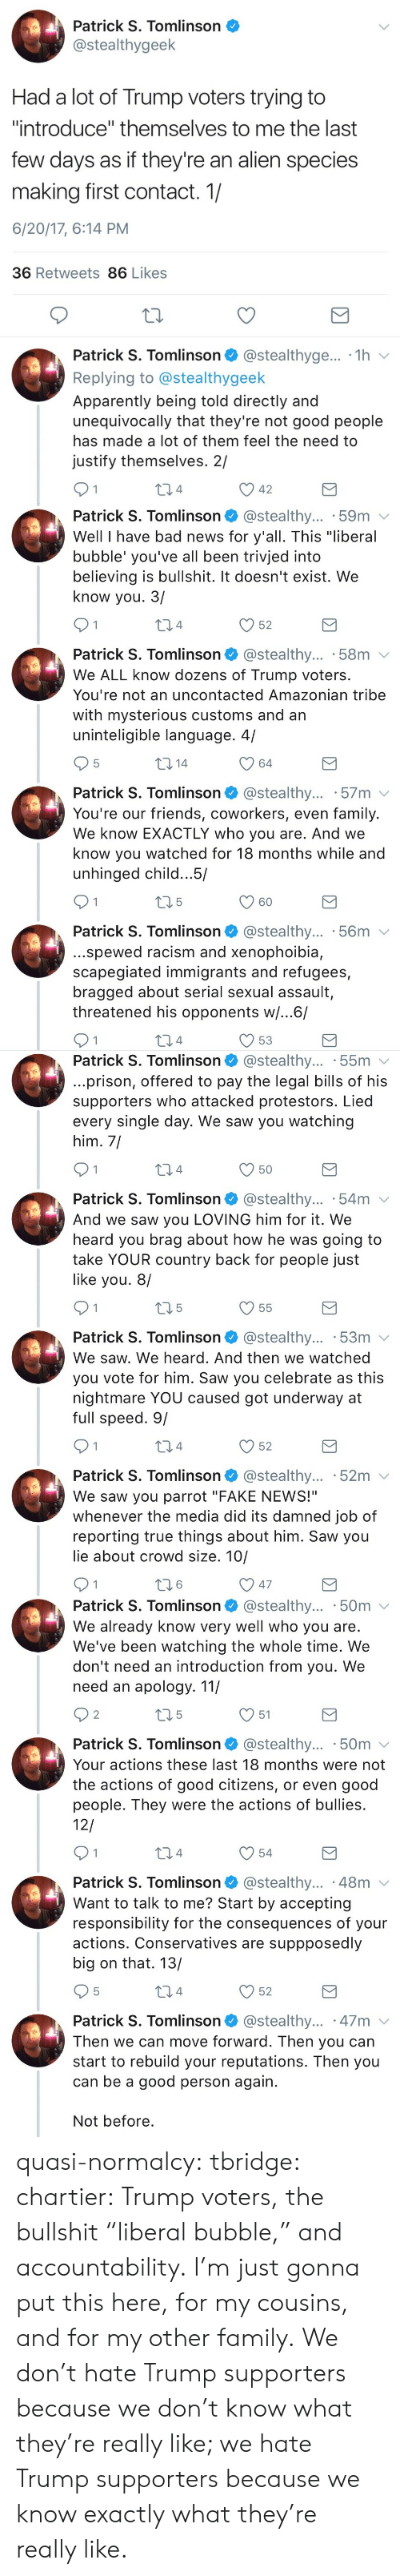 """Hate Trump: Patrick S. Tomlinson  @stealthygeek  Had a lot of Trump voters trying to  """"introduce"""" themselves to me the last  few days as if they're an alien species  making first contact. 1/  6/20/17, 6:14 PM  36 Retweets 86 Likes  Patrick S. Tomlinson @stealthyge... 1h v  Replying to @stealthygeek  Apparently being told directly and  unequivocally that they're not good people  has made a lot of them feel the need to  justify themselves. 2/  04  42   Patrick S. Tomlinson @stealthy... .59m v  Well I have bad news for y'all. This """"liberal  bubble' you've all been trivjed into  believing is bullshit. It doesn't exist. We  know you. 3/  4  52  Patrick S. Tomlinson @stealthy... 58m  We ALL know dozens of Trump voters.  You're not an uncontacted Amazonian tribe  with mysterious customs and an  uninteligible language. 4/  5  64  Patrick S. Tomlinson @stealthy... 57m v  You're our friends, coworkers, even family.  We know EXACTLY who you are. And we  know you watched for 18 months while and  unhinged child.. .5/  60  Patrick S. Tomlinson* @stealthy...-56m ﹀  ..spewed racism and xenophoibia,  scapegiated immigrants and refugees,  bragged about serial sexual assault,  threatened his opponents w/...6/  4  53   Patrick S. Tomlinson @stealthy... 55m v  prison, offered to pay the legal bills of his  supporters who attacked protestors. Lied  every single day. We saw you watching  him, 7  4  Patrick S. Tomlinson @stealthy... .54m  And we saw you LOVING him for it. We  heard you brag about how he was going to  take YOUR country back for people just  like you. 8/  V55  Patrick S. Tomlinson* @stealthy...-53m  We saw. We heard. And then we watched  you vote for him. Saw you celebrate as this  nightmare YOU caused got underway at  full speed. 9/  4  52  Patrick S. Tomlinson @stealthy... 52m v  We saw you parrot """"FAKE NEWS!""""  whenever the media did its damned job of  reporting true things about him. Saw you  lie about crowd size. 10/  6   Patrick S. Tomlinson @stealthy... .50m  We alread"""